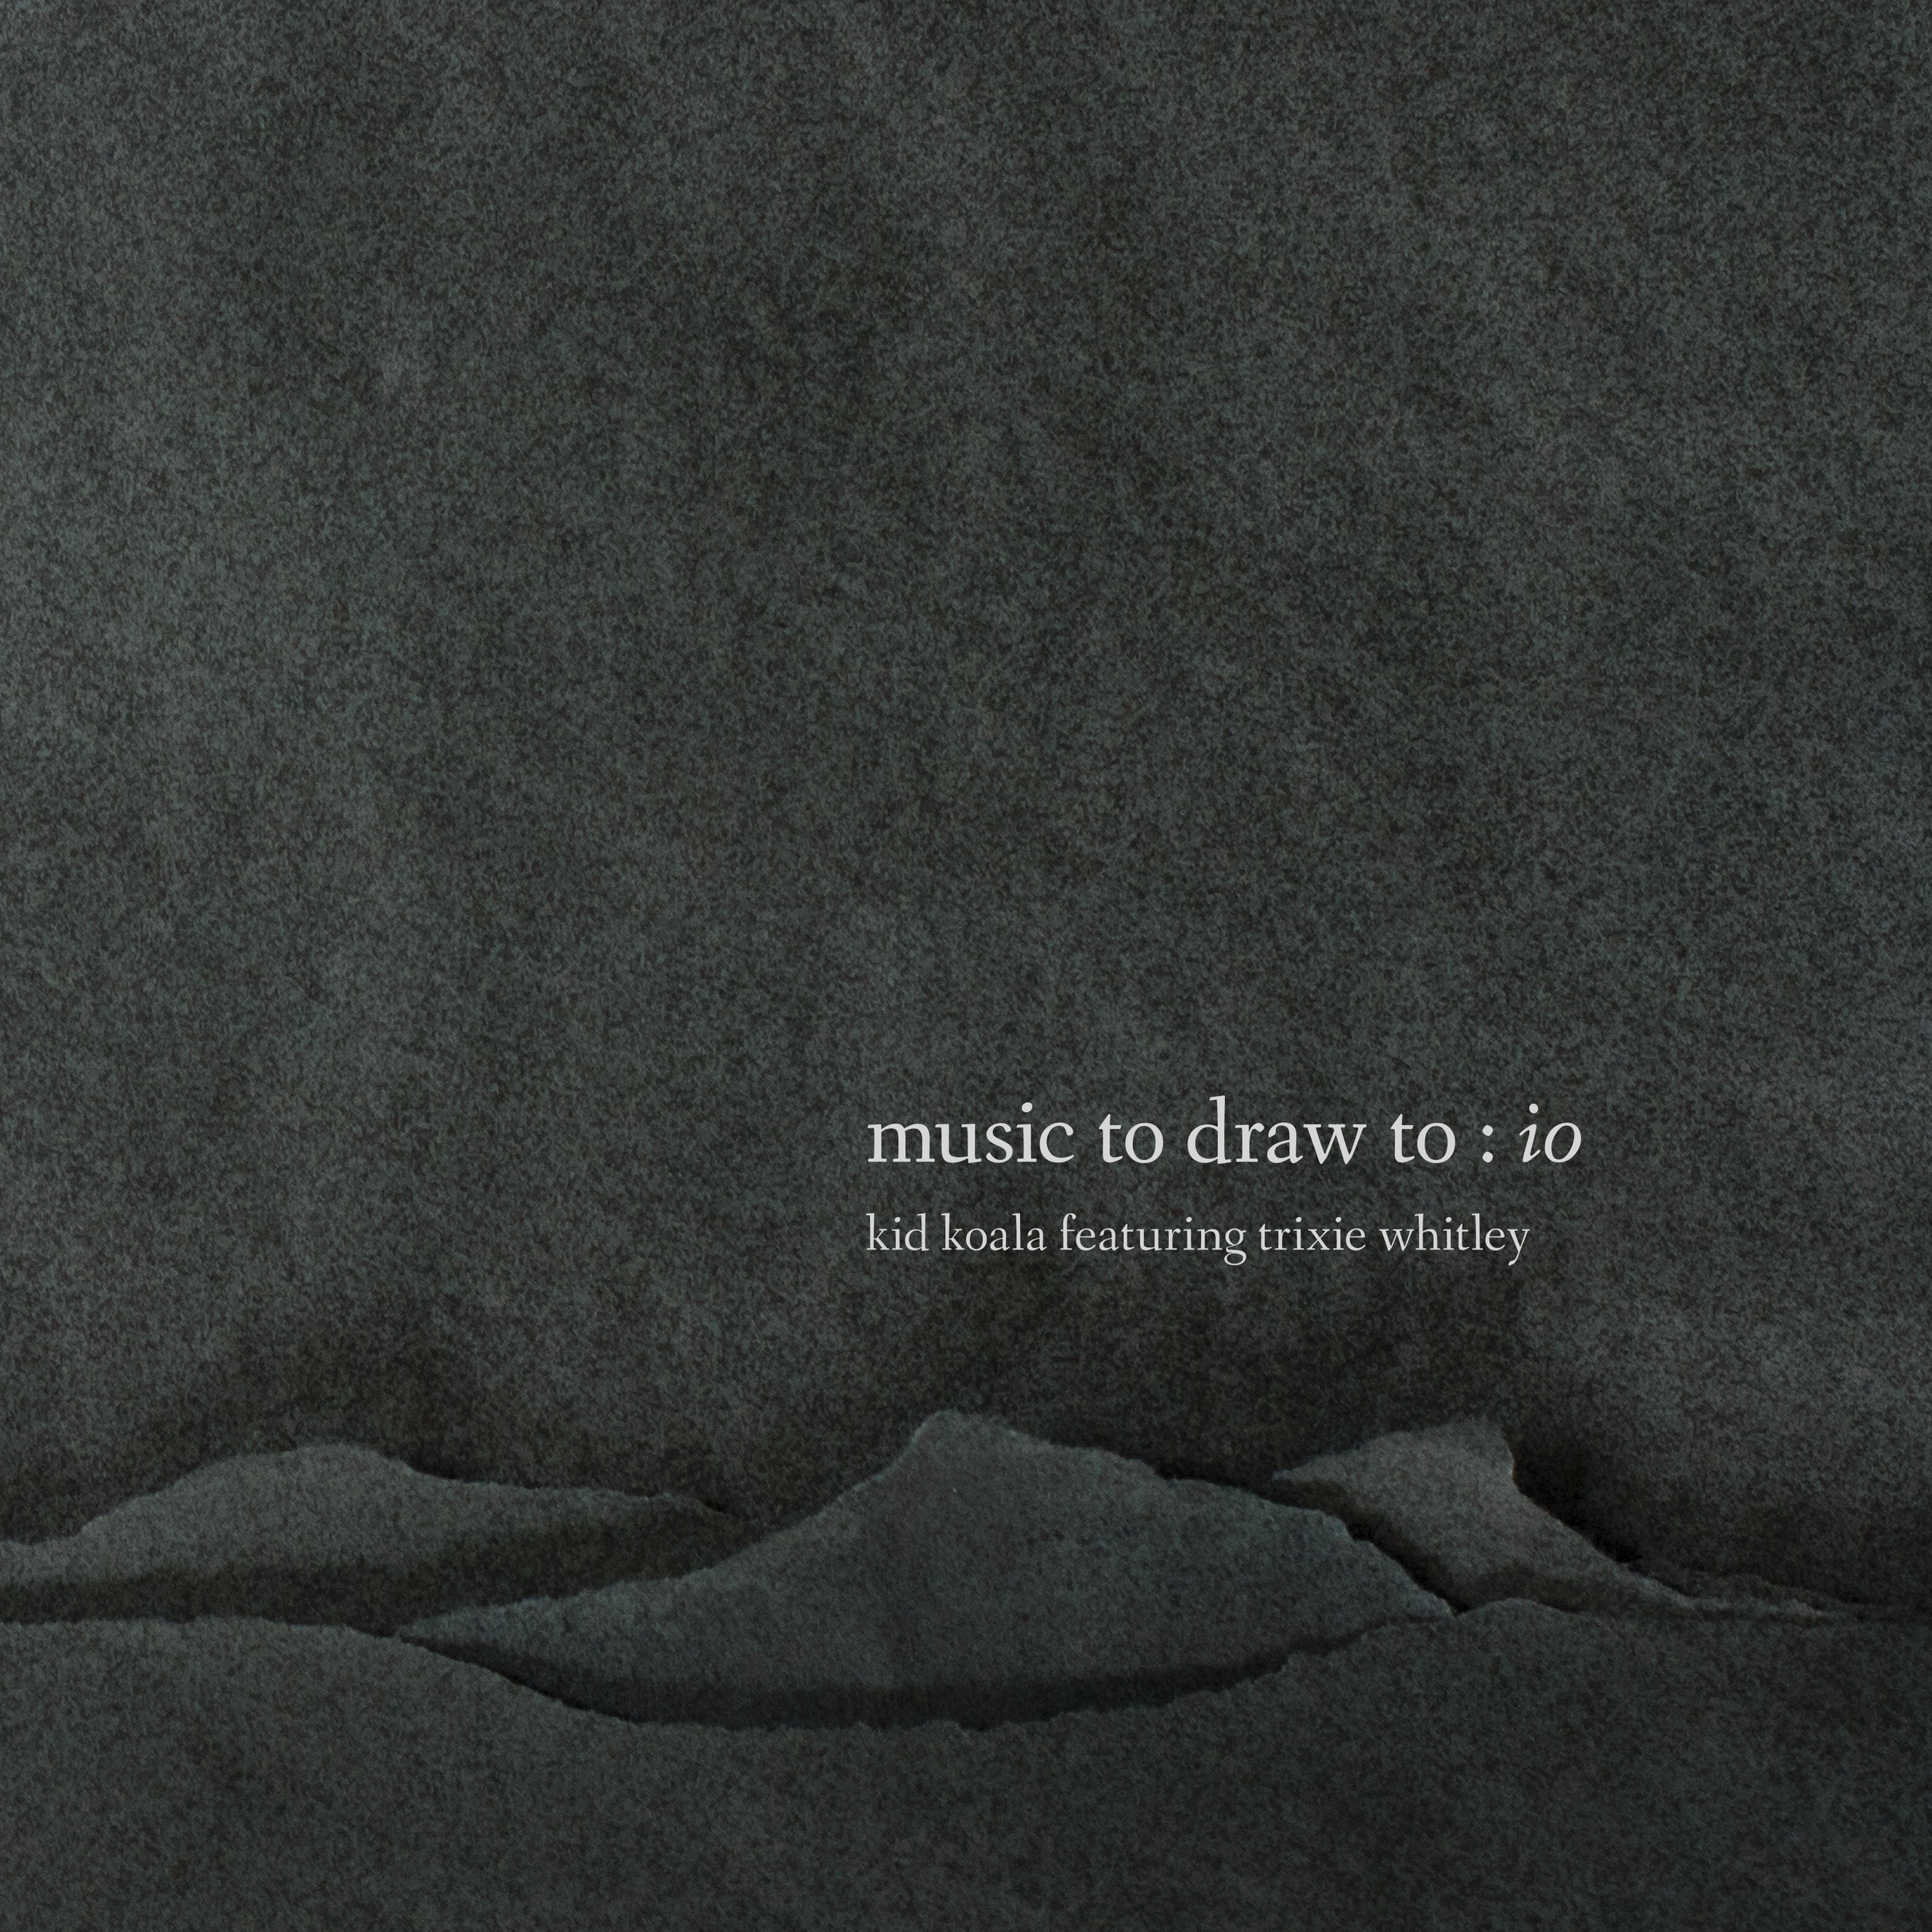 KID KOALA - Music To Draw To: Io